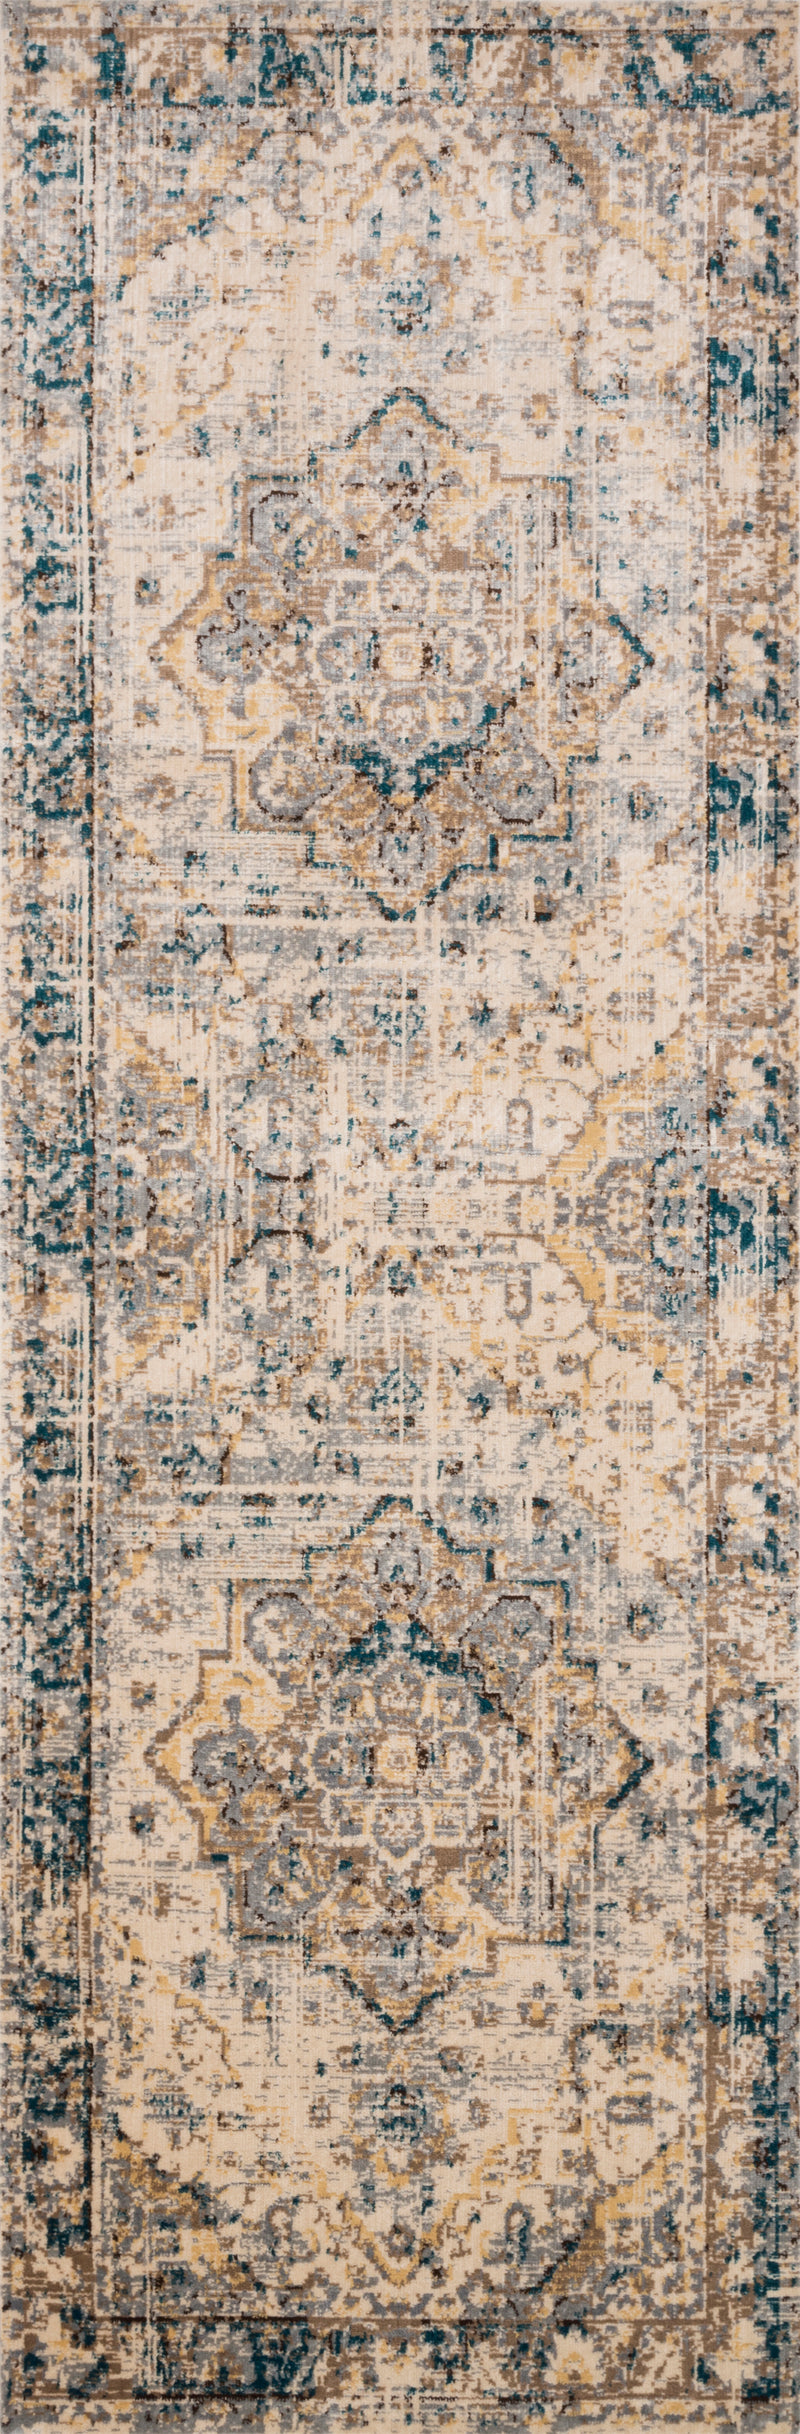 ISADORA Collection Rug  in  OATMEAL / BARK Beige Accent Power-Loomed Polypropylene